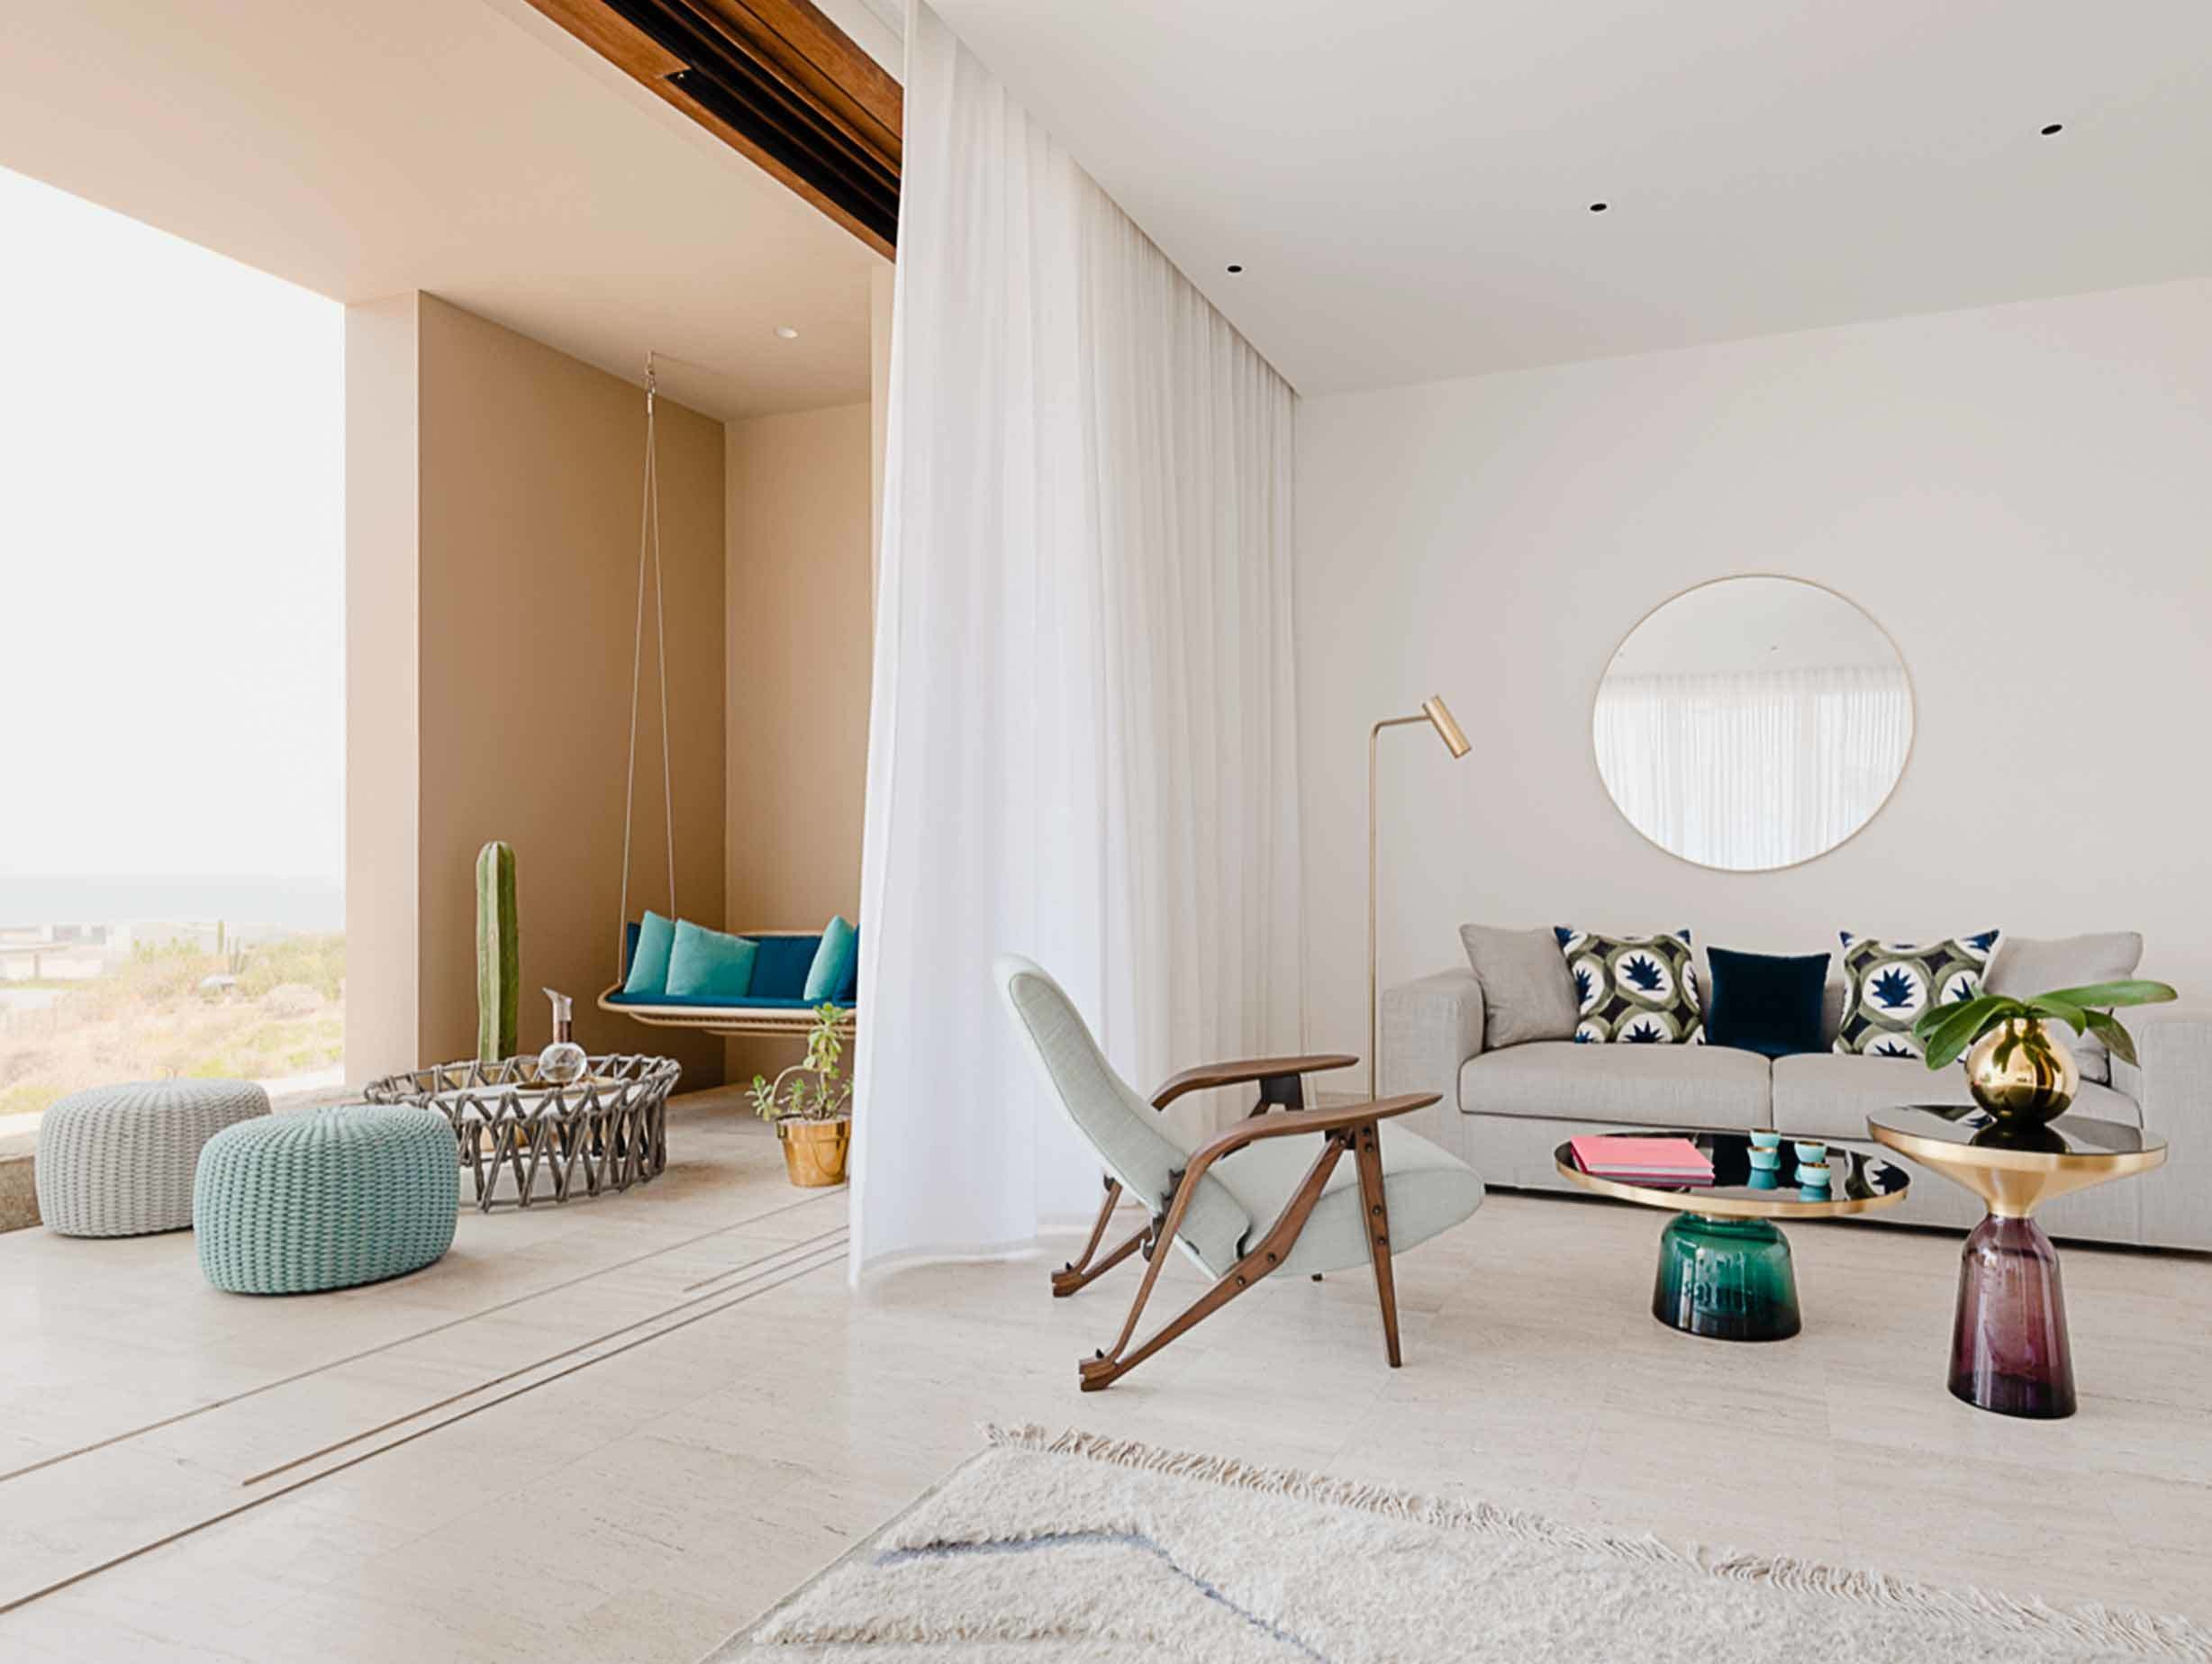 Kallos Turin Cabo Project 5 image